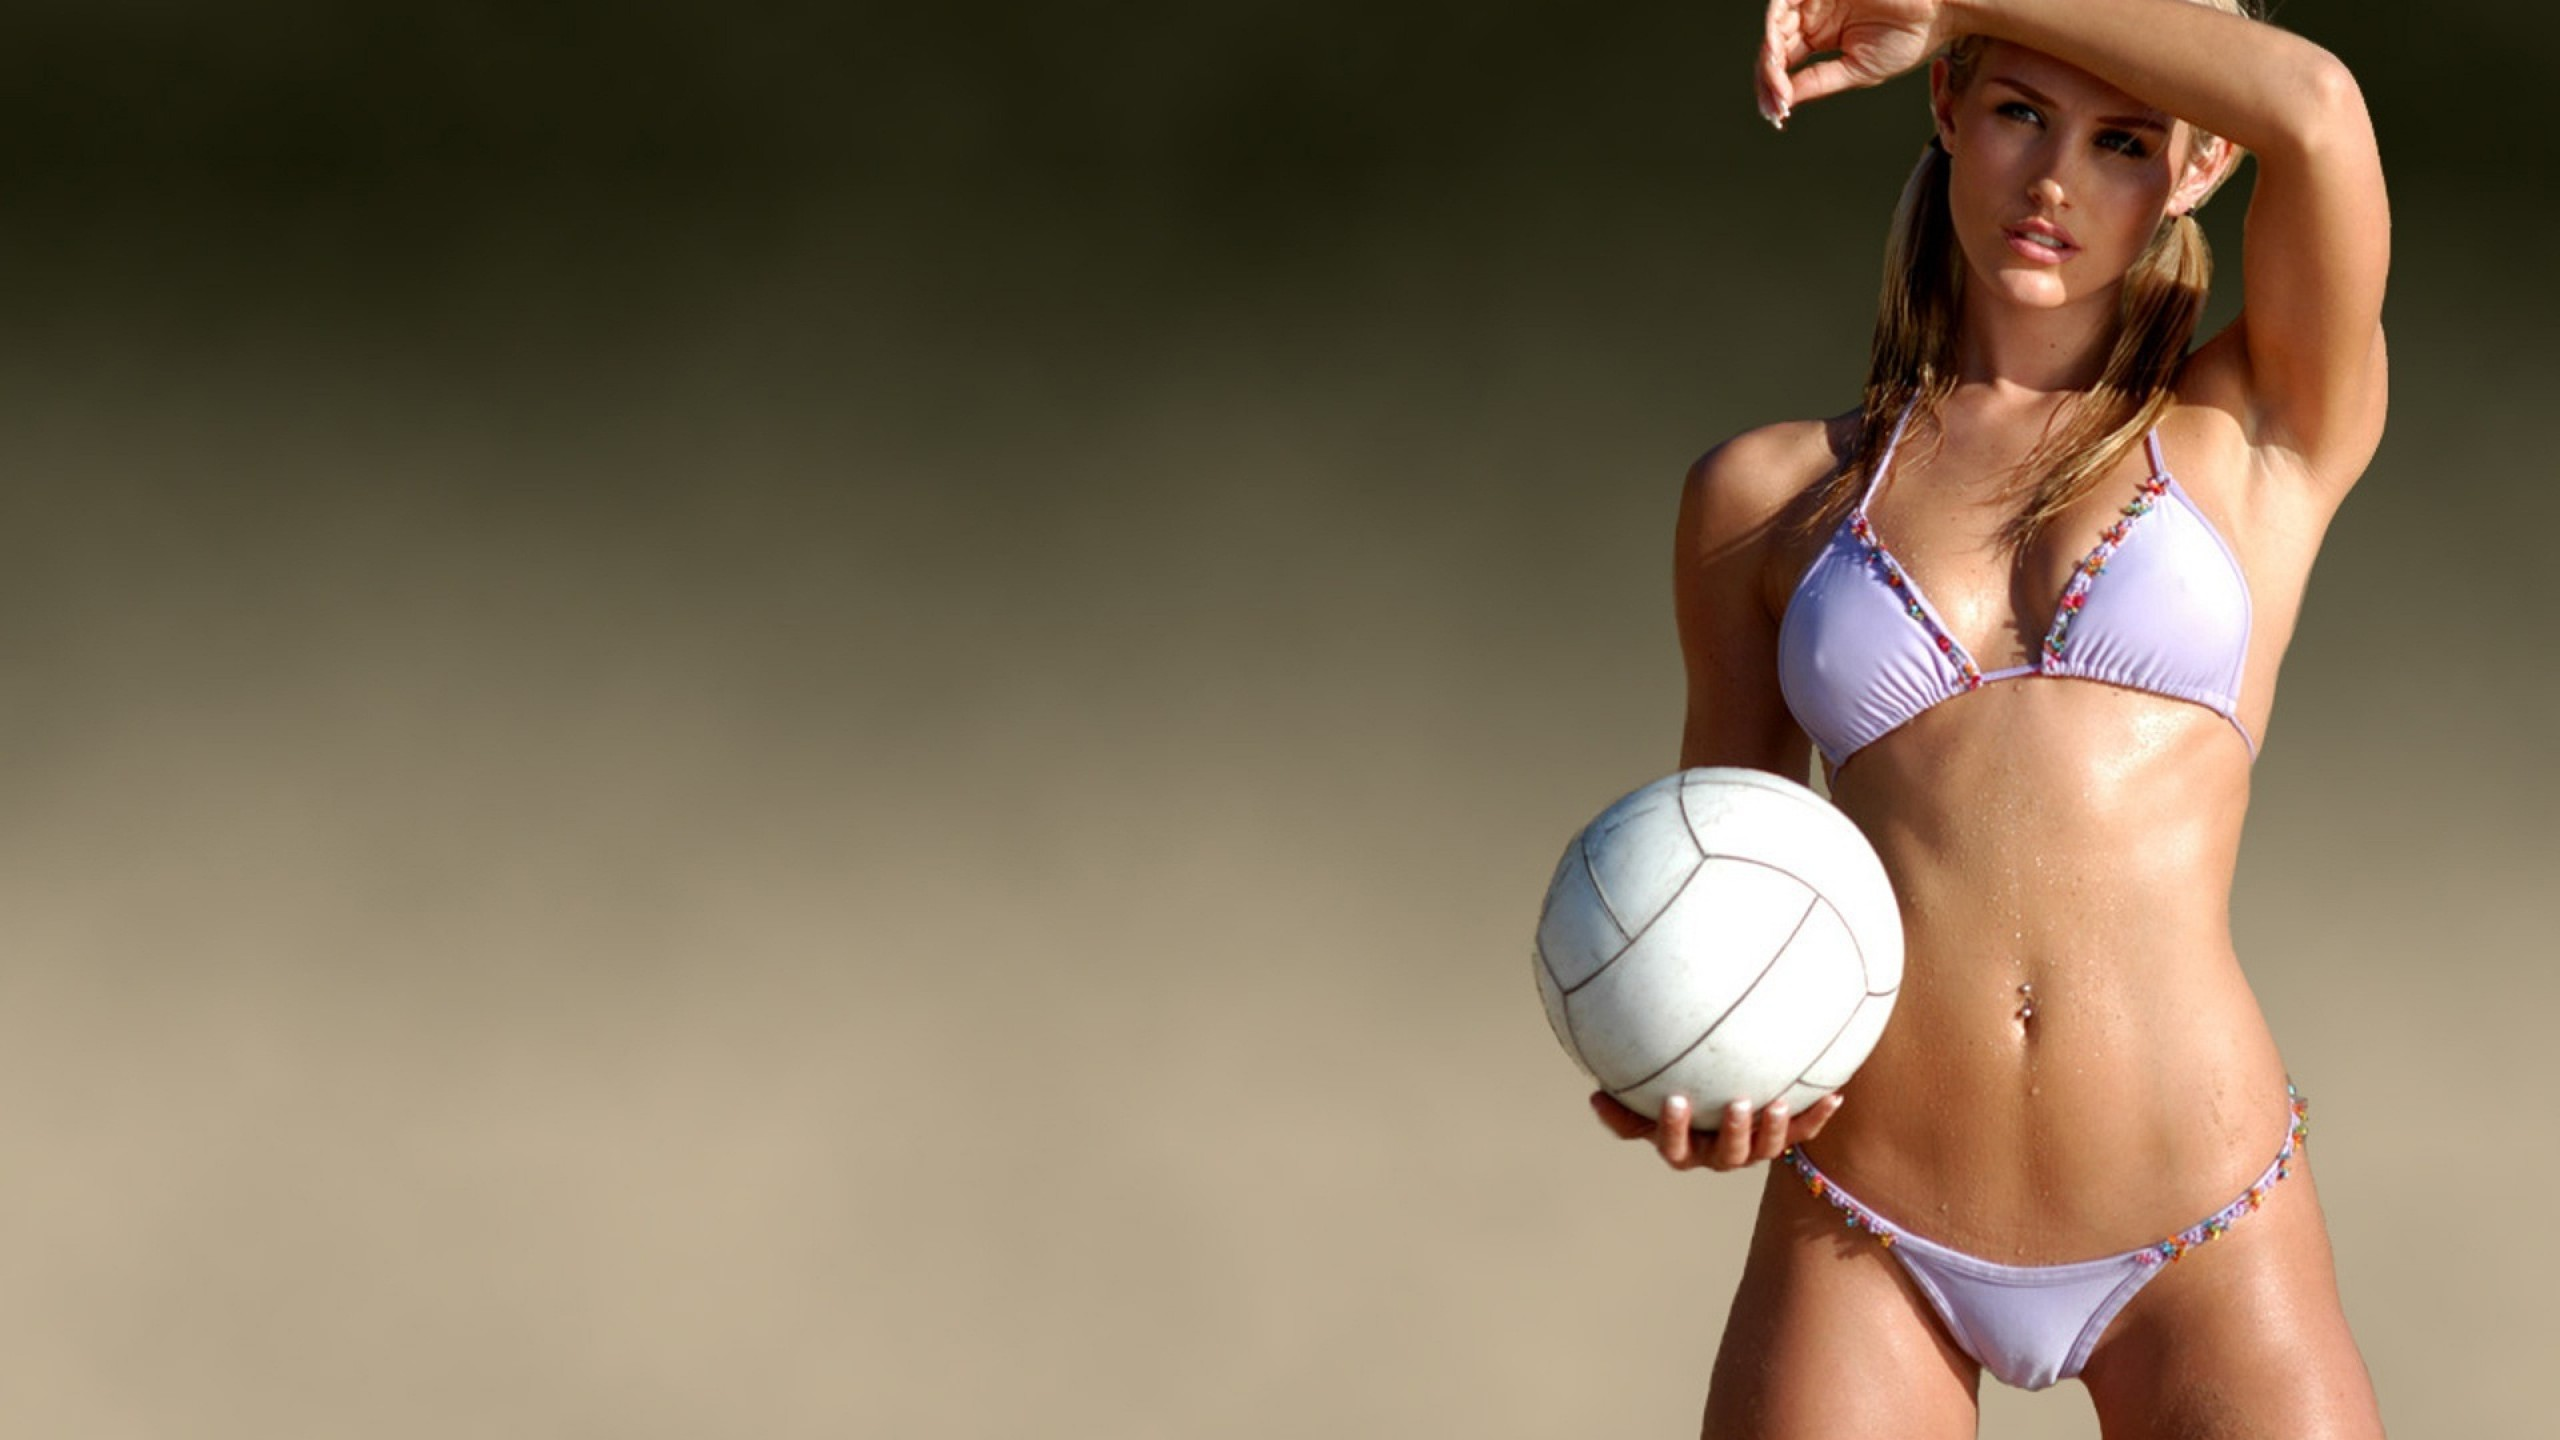 Beach Volleyball Images& Picture